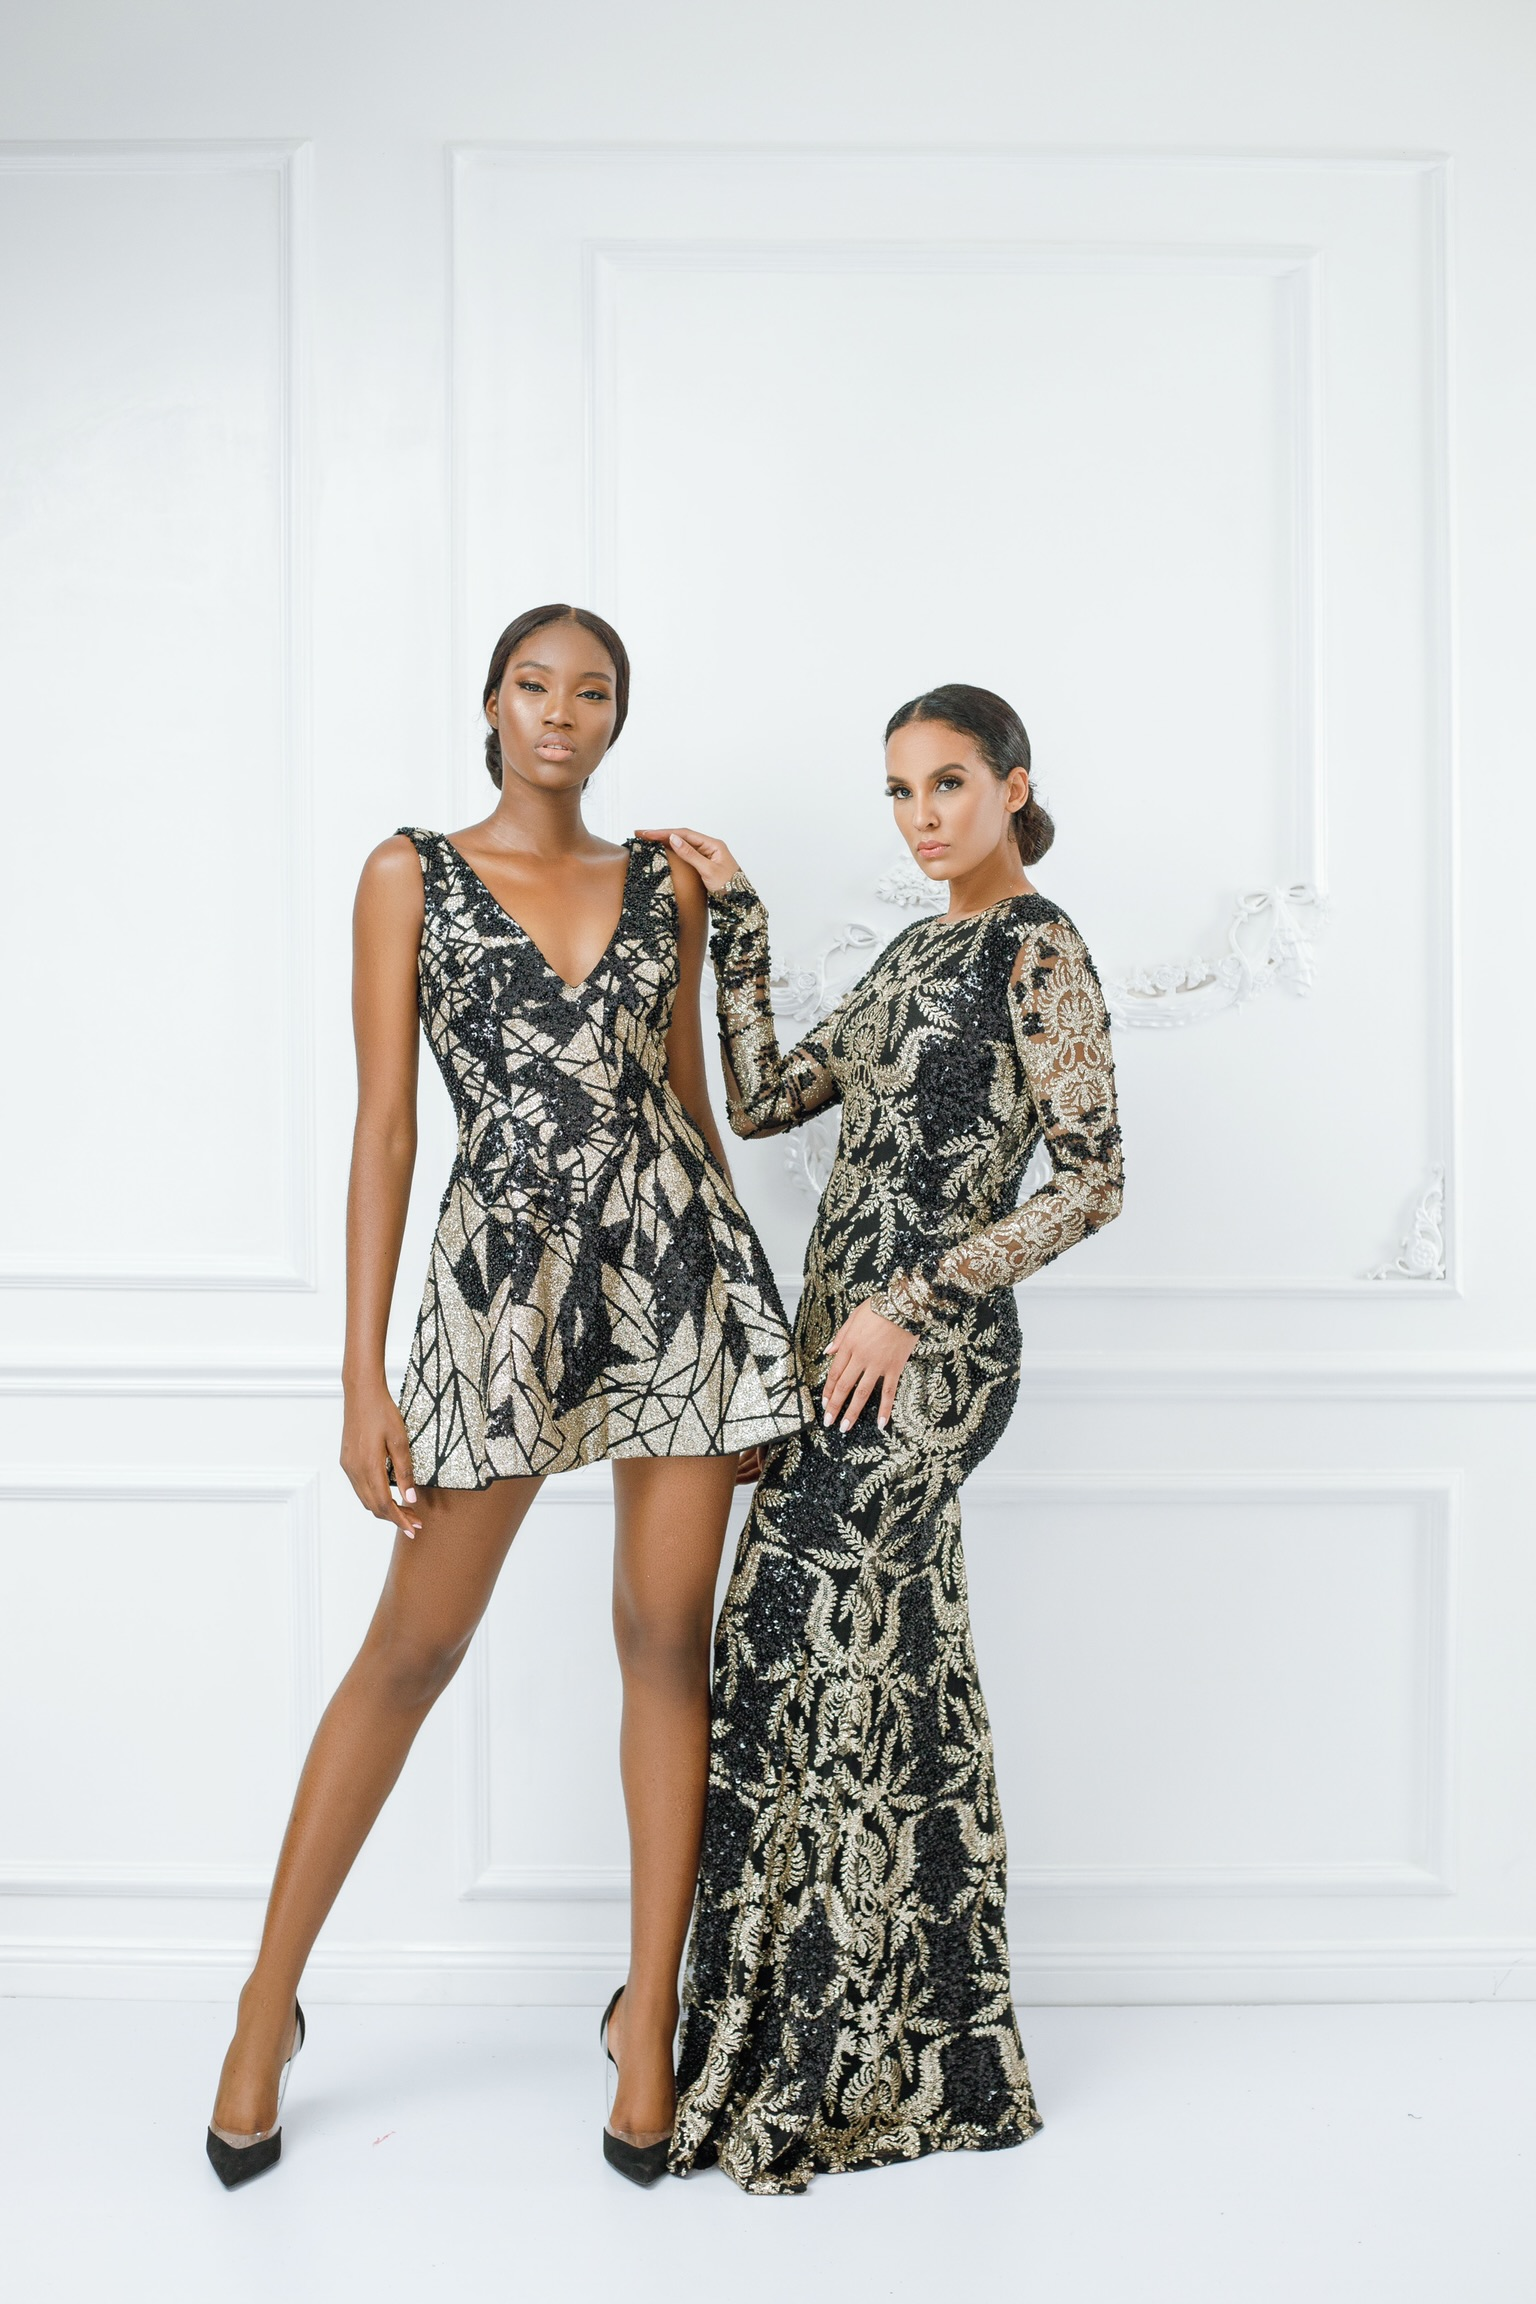 chidinma-obairi-releases-a-whimsical-ready-to-wear-fall-2020-collection